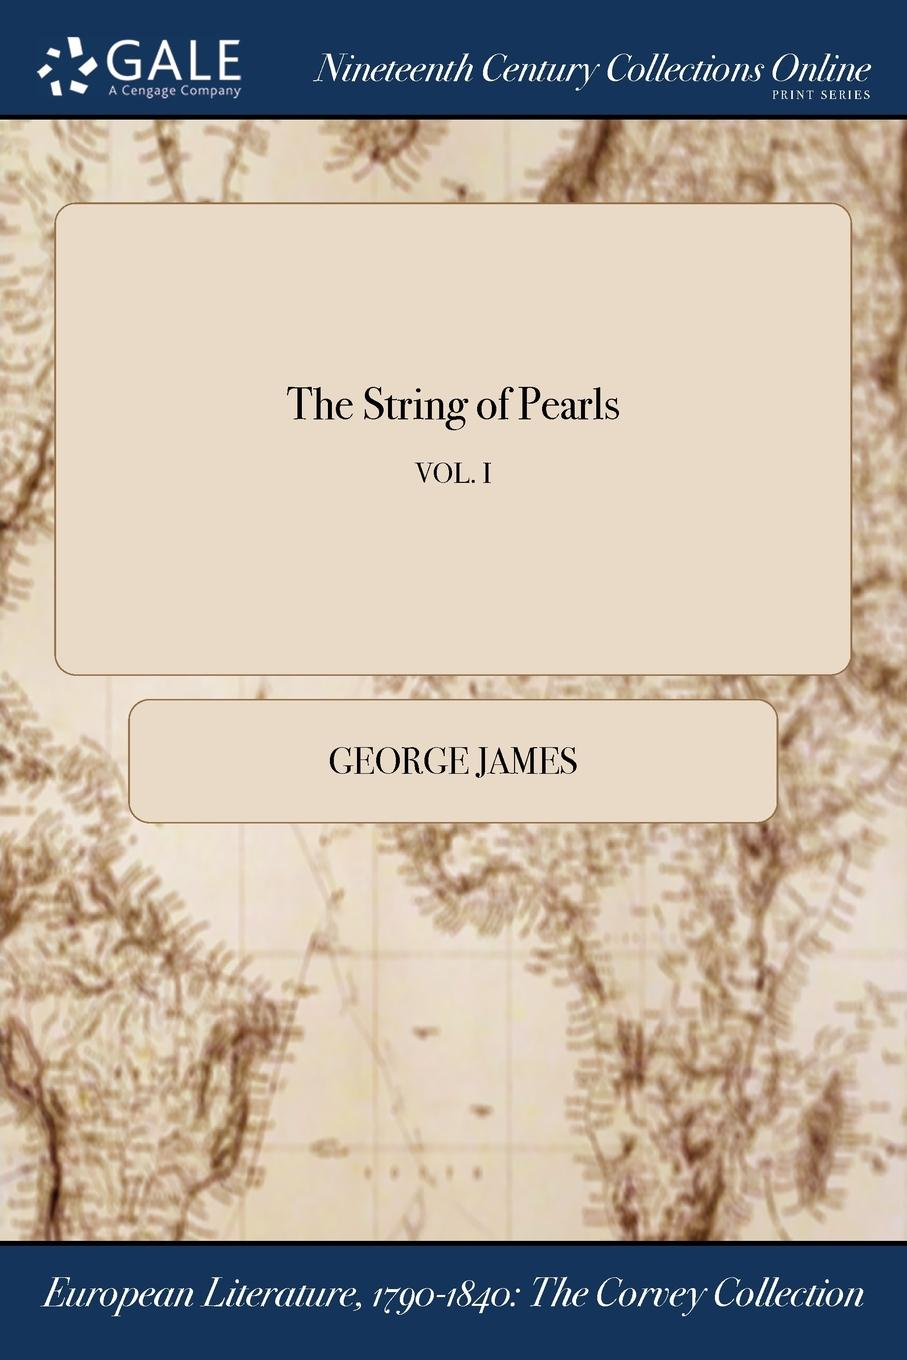 George James The String of Pearls; VOL. I